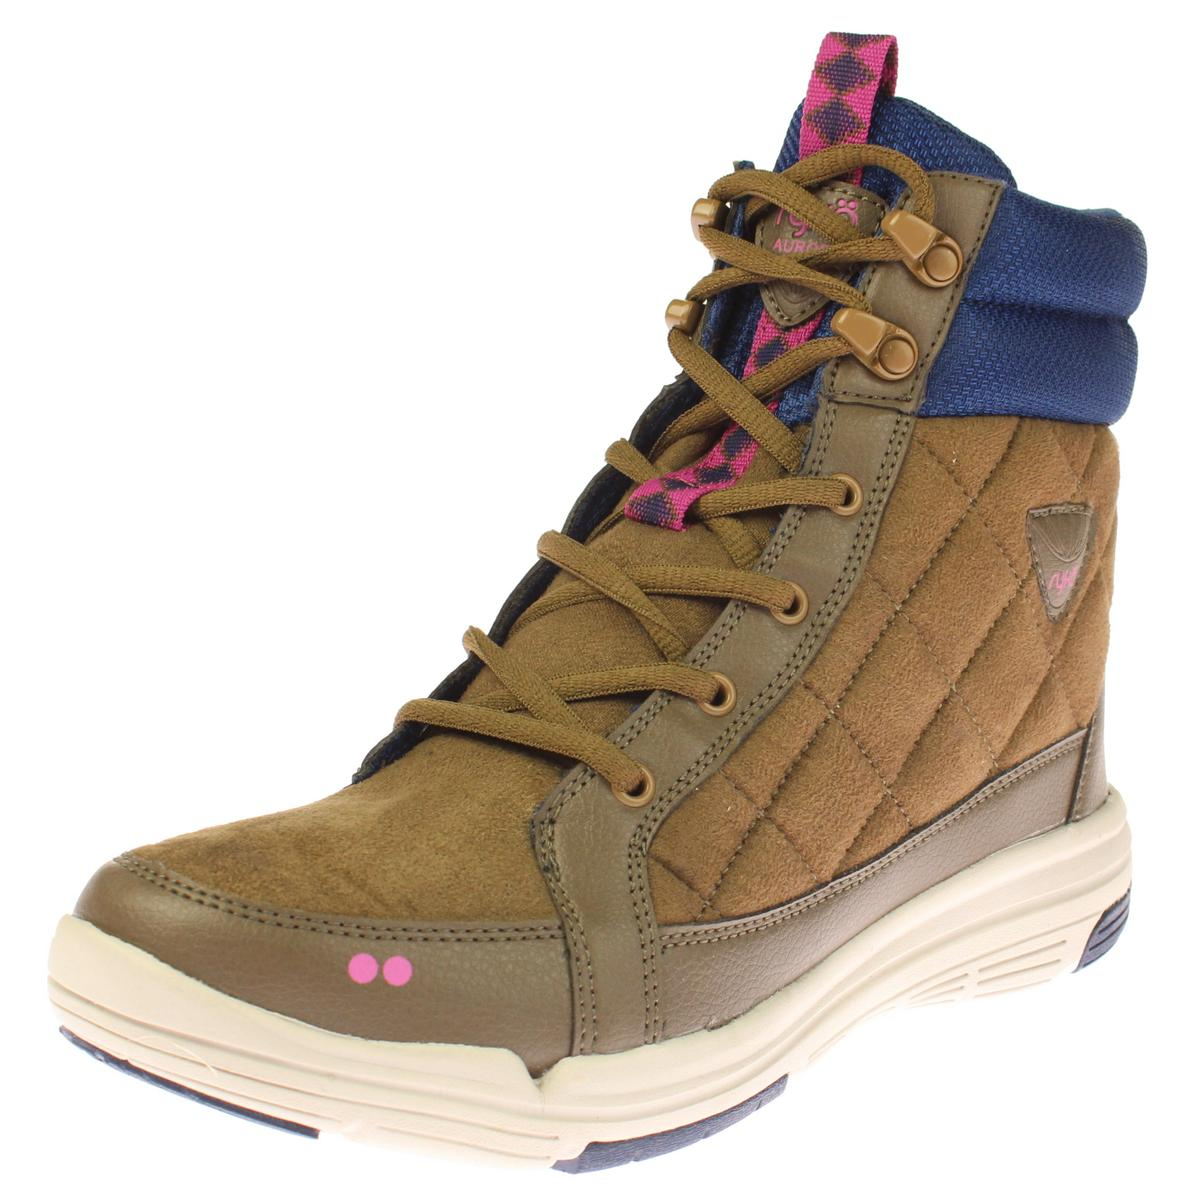 Ryka Womens Aurora Quilted Outdoor Fashion Sneakers